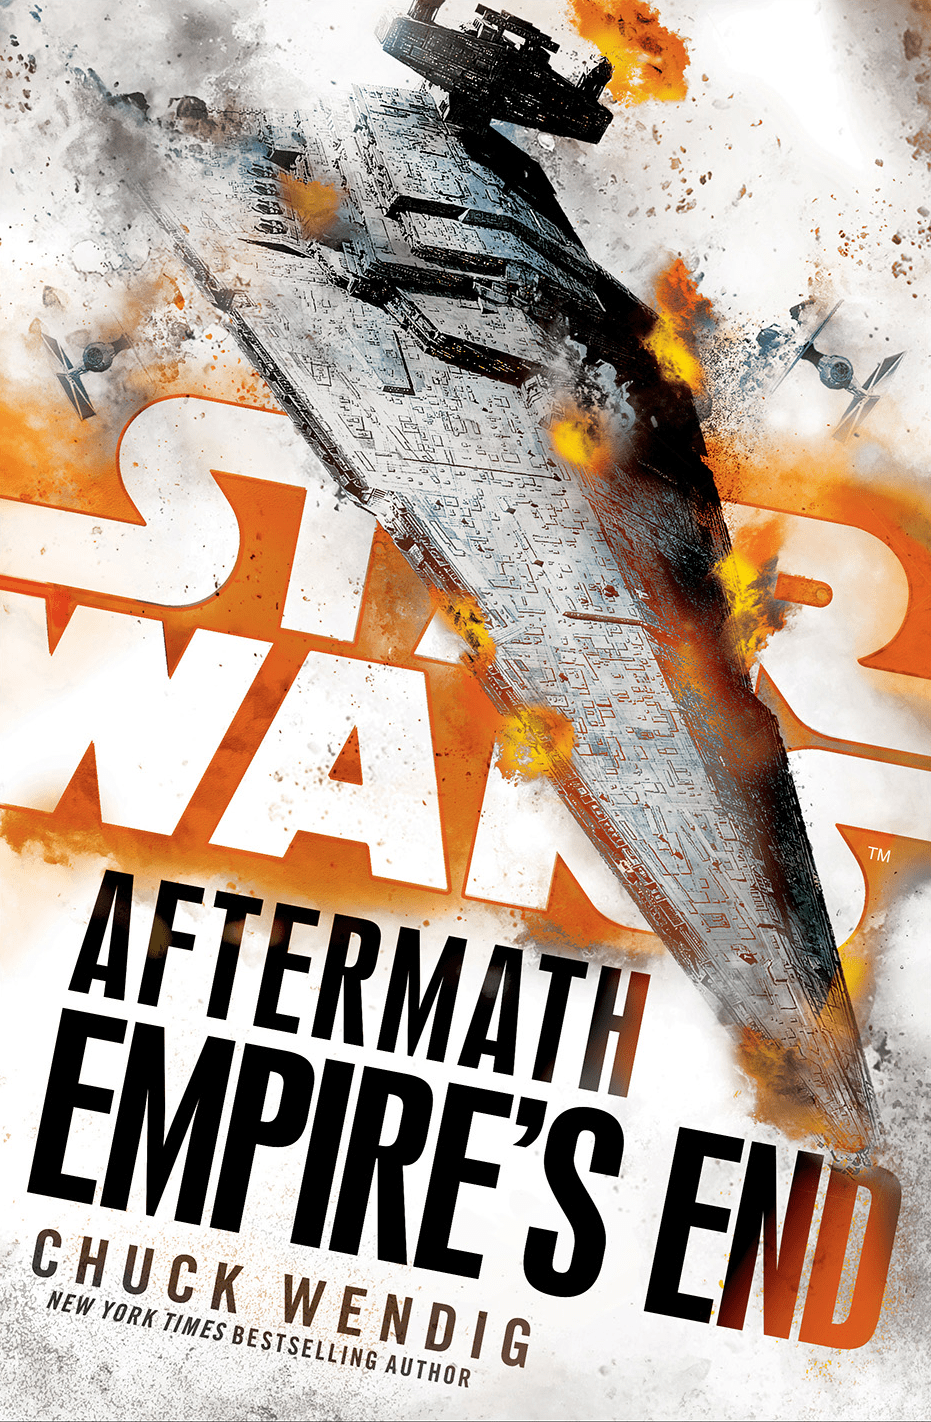 Star Wars Aftermath: Empire's End excerpt features Lando and Lobot